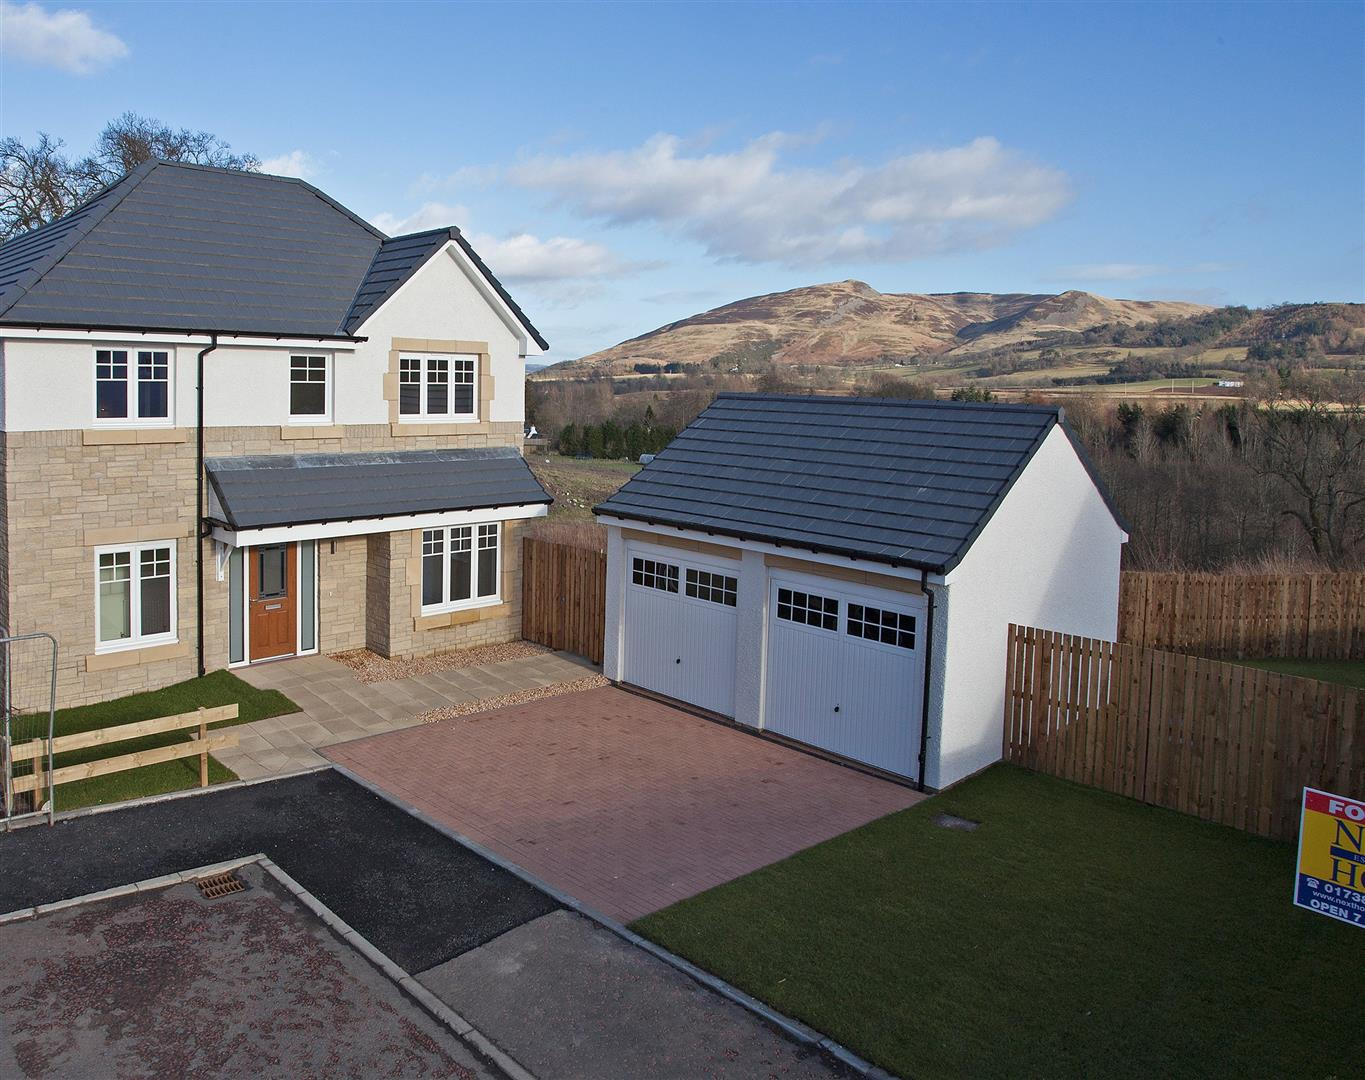 New Build, Ochil View, Auchterarder, Perthshire, PH3 1FF, UK